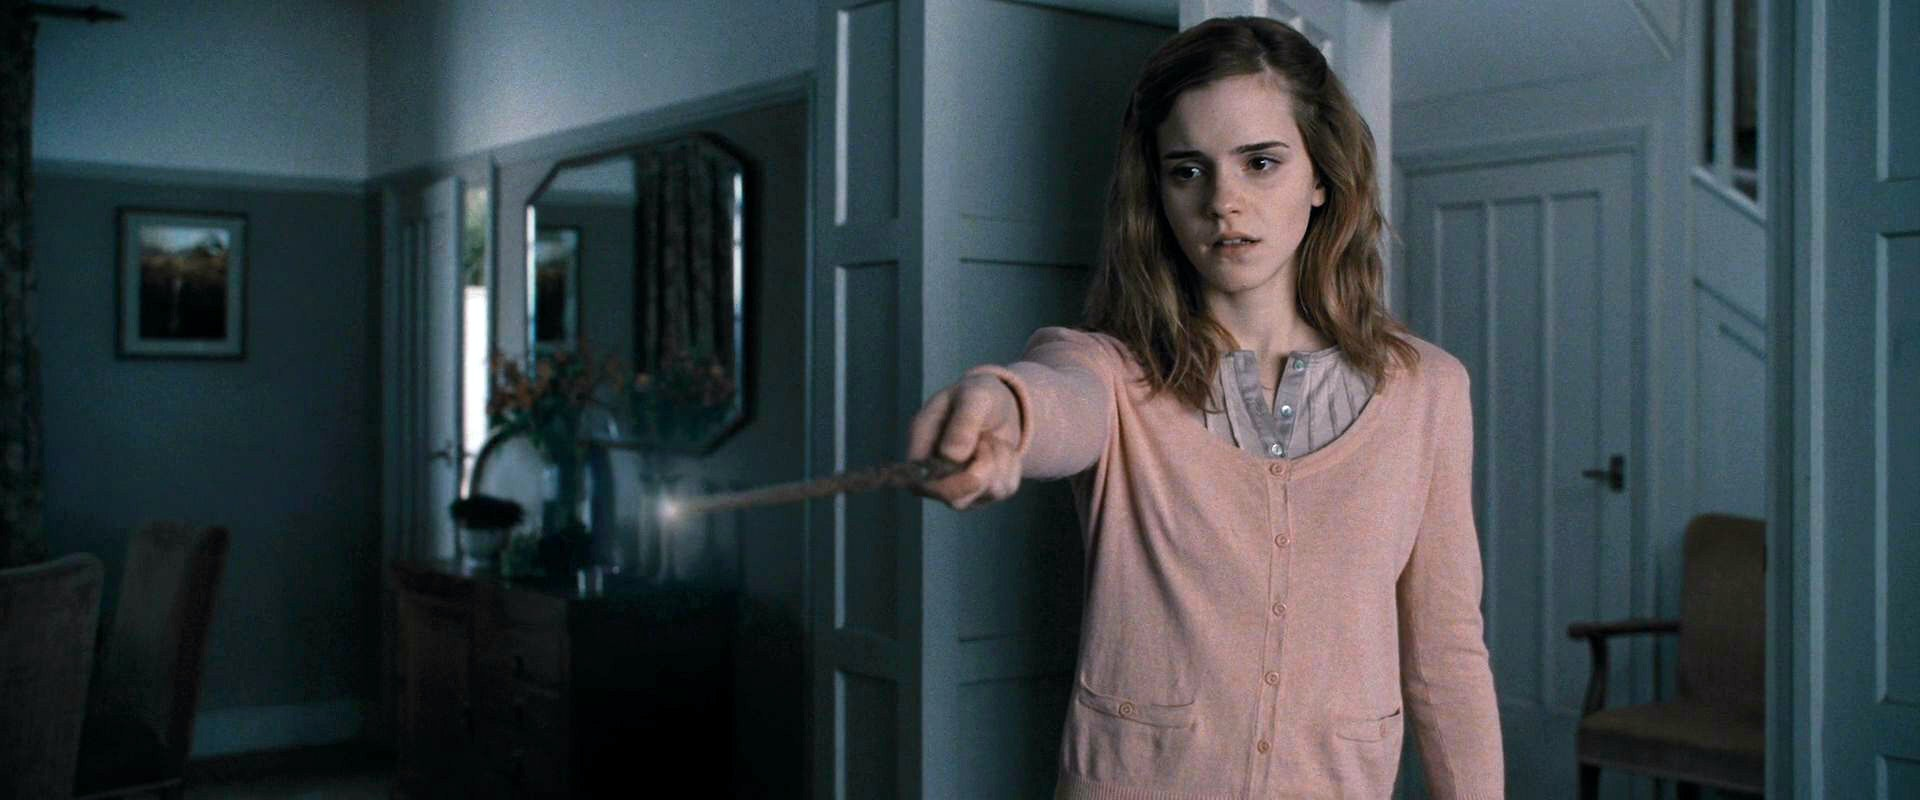 15 'Harry Potter' Spells We Really Wish We Could Use In Real Life